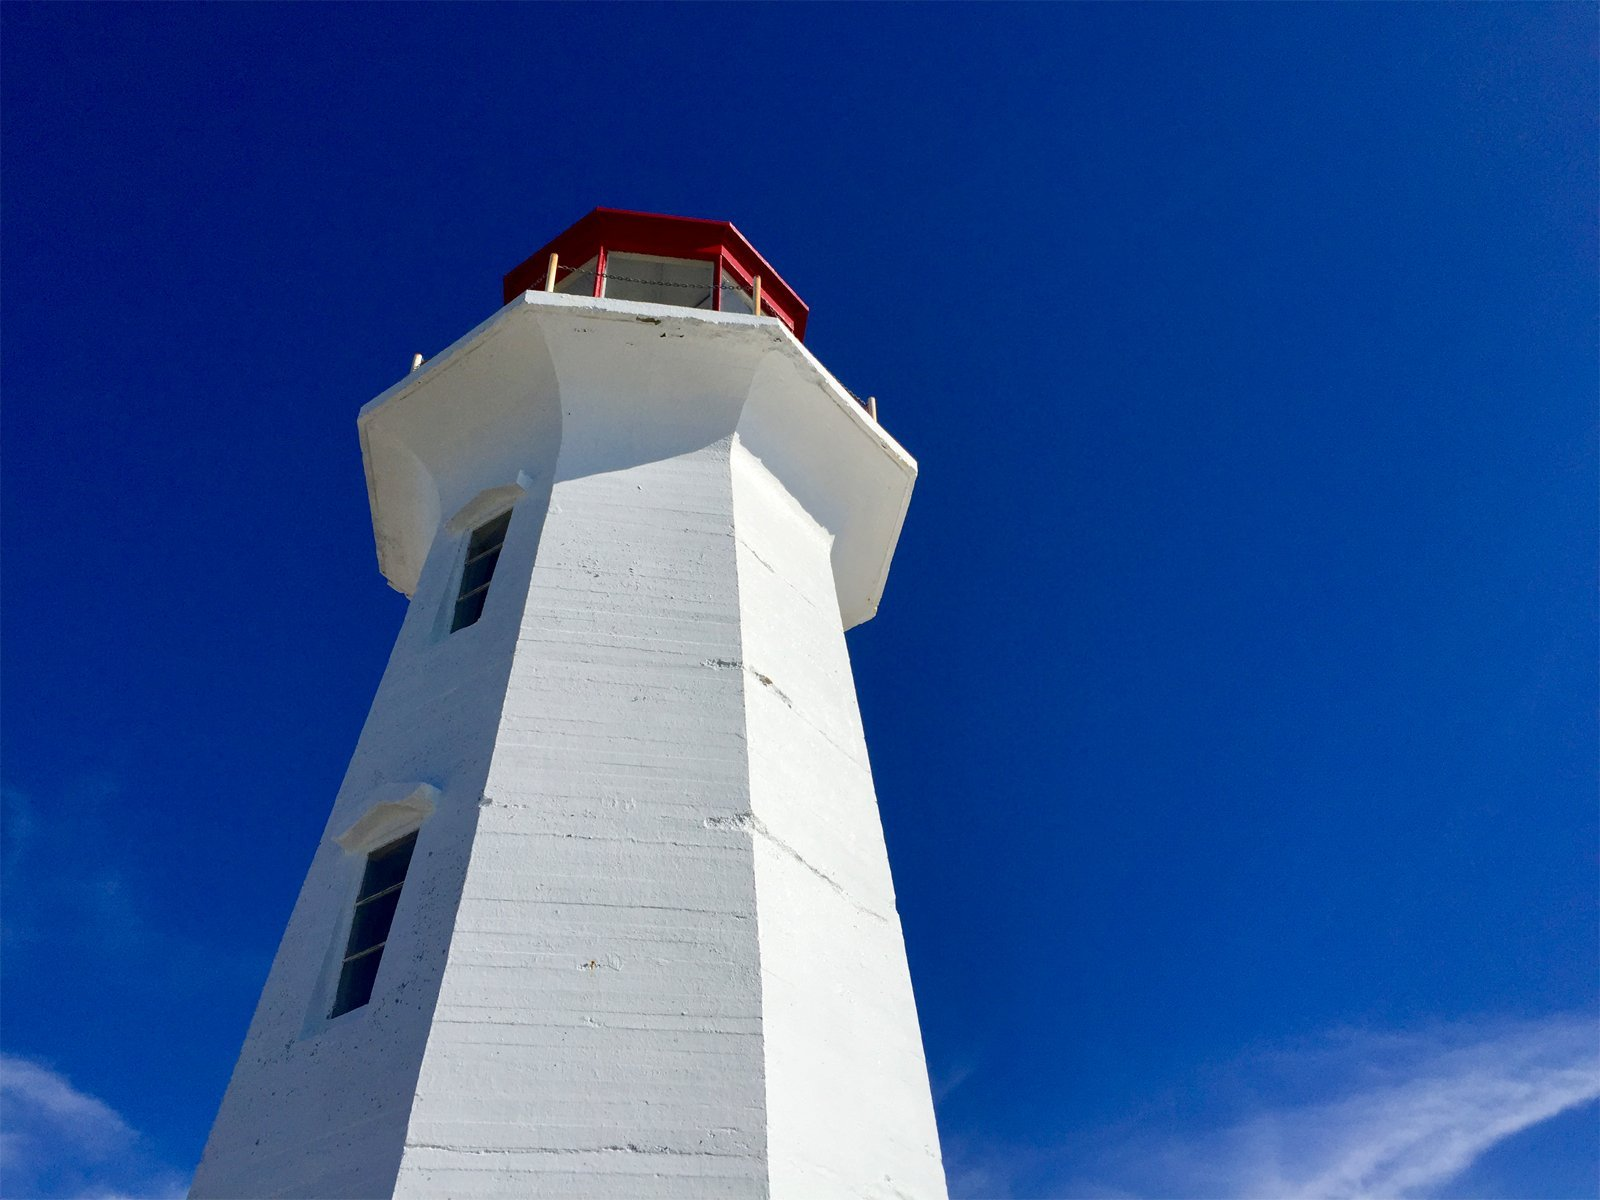 Peggy's Point Lighthouse near Halifax, Nova Scotia, Canada